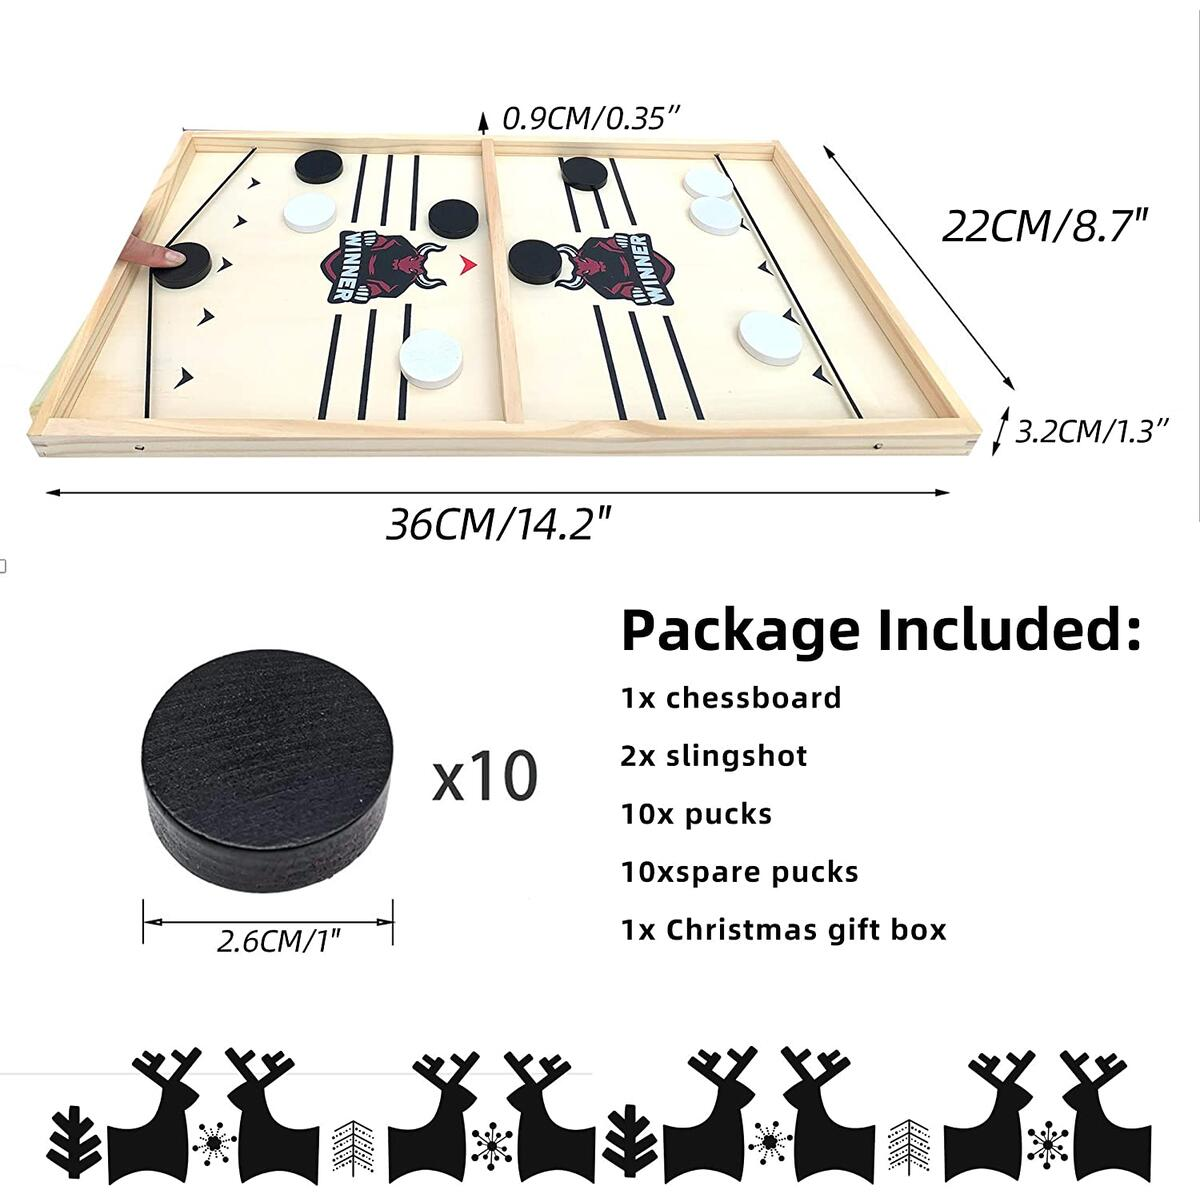 Daniel's Fast Sling Puck Game-Foosball Winner Board Game for Holiday Surprise -Speed Puck Game for Family Fun Night-Small Size Sling Hockey Table Game for Any Ages (14